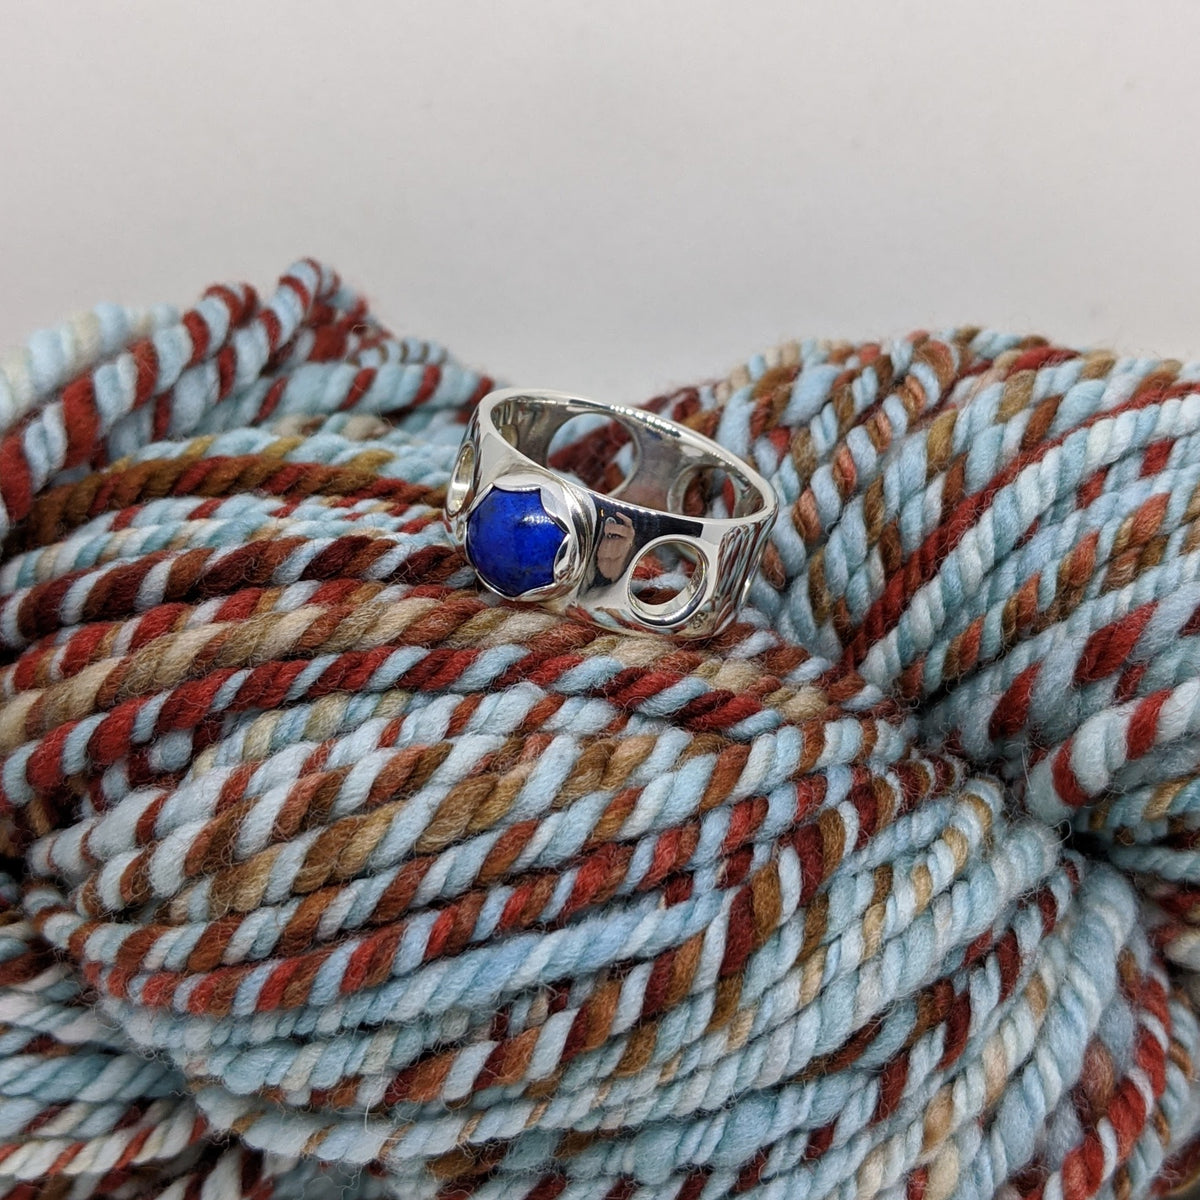 worsted weight ring set with lapis lazuli